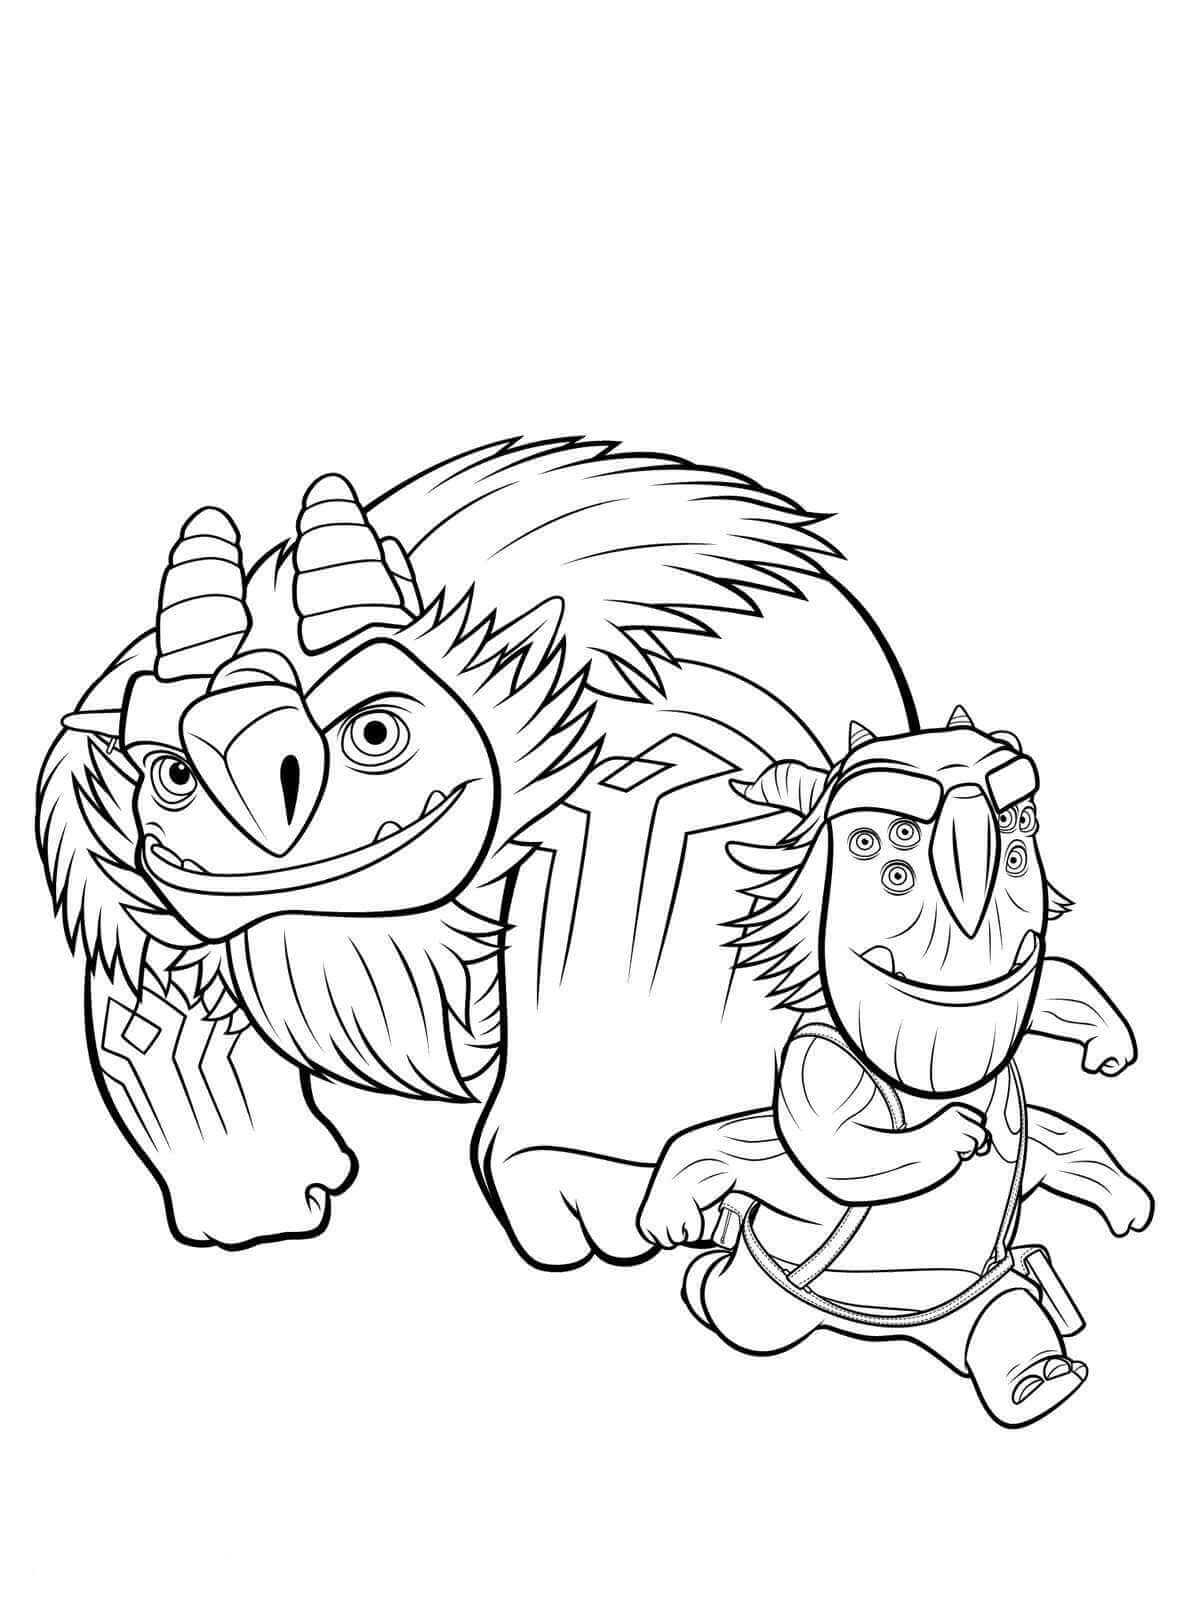 Trollhunters Dibujos Para Colorear on Angry Birds Coloring Pages